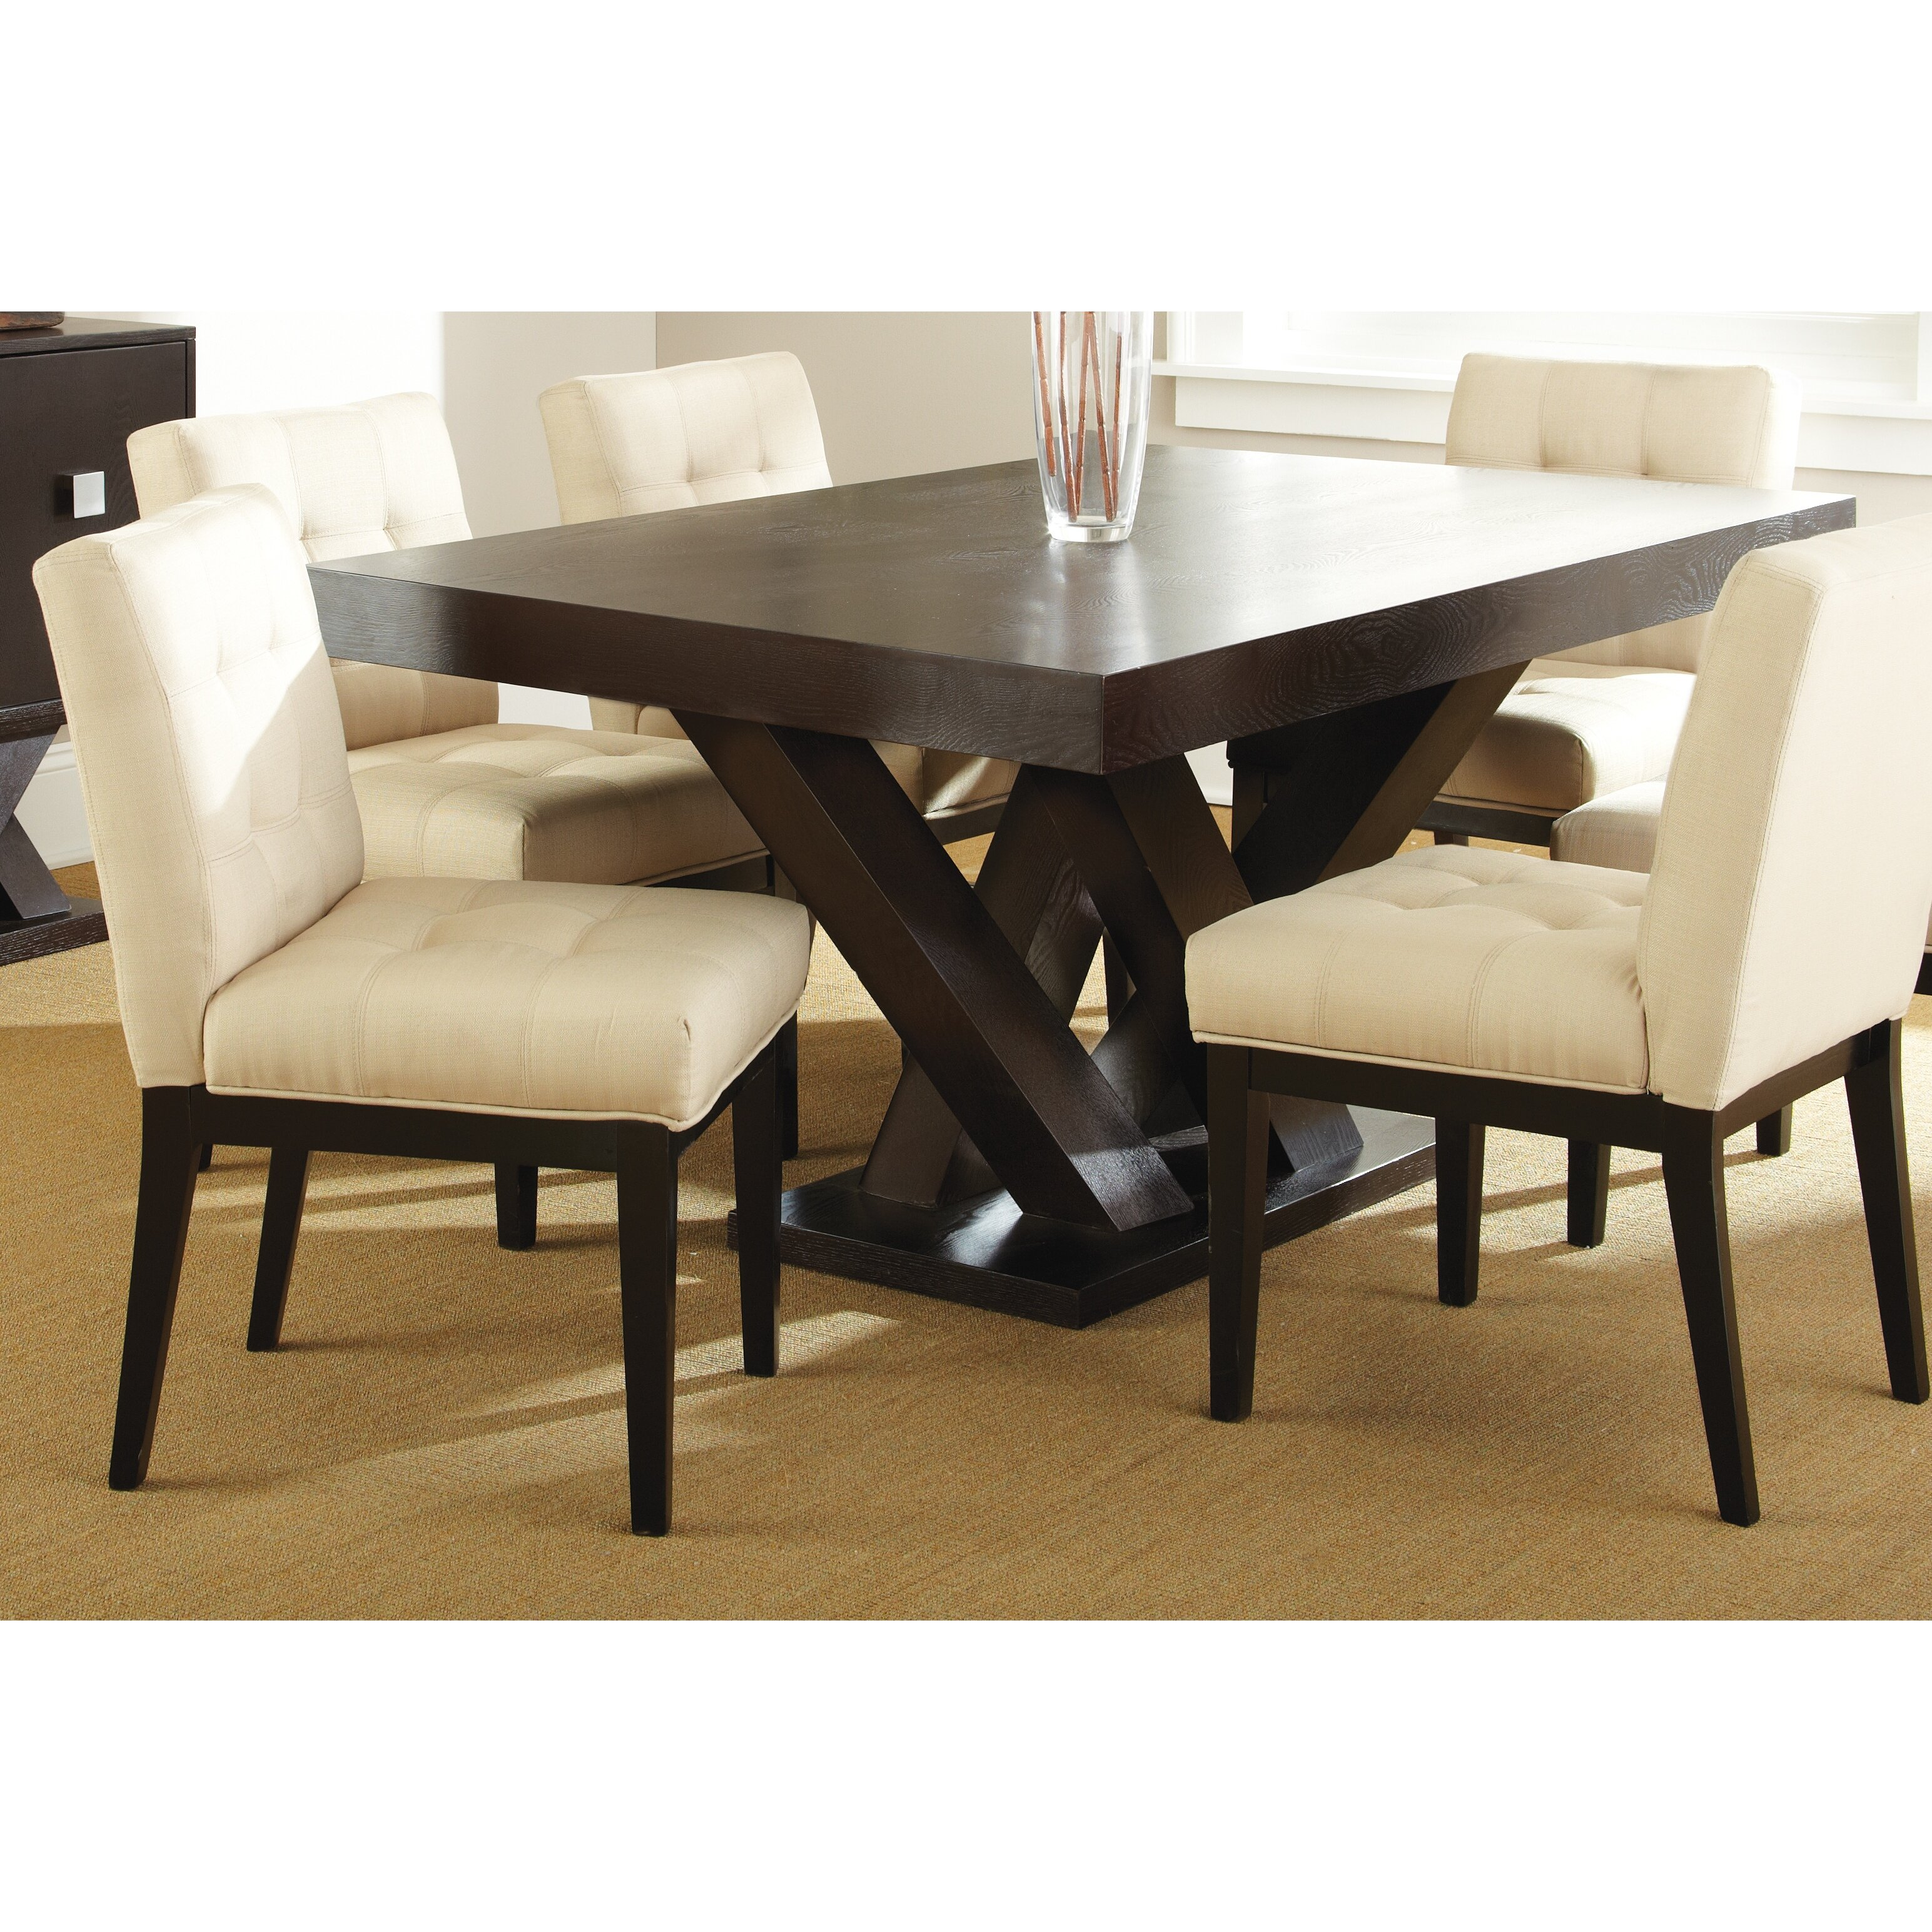 Latitude run dining table reviews wayfair for Wayfair dining table